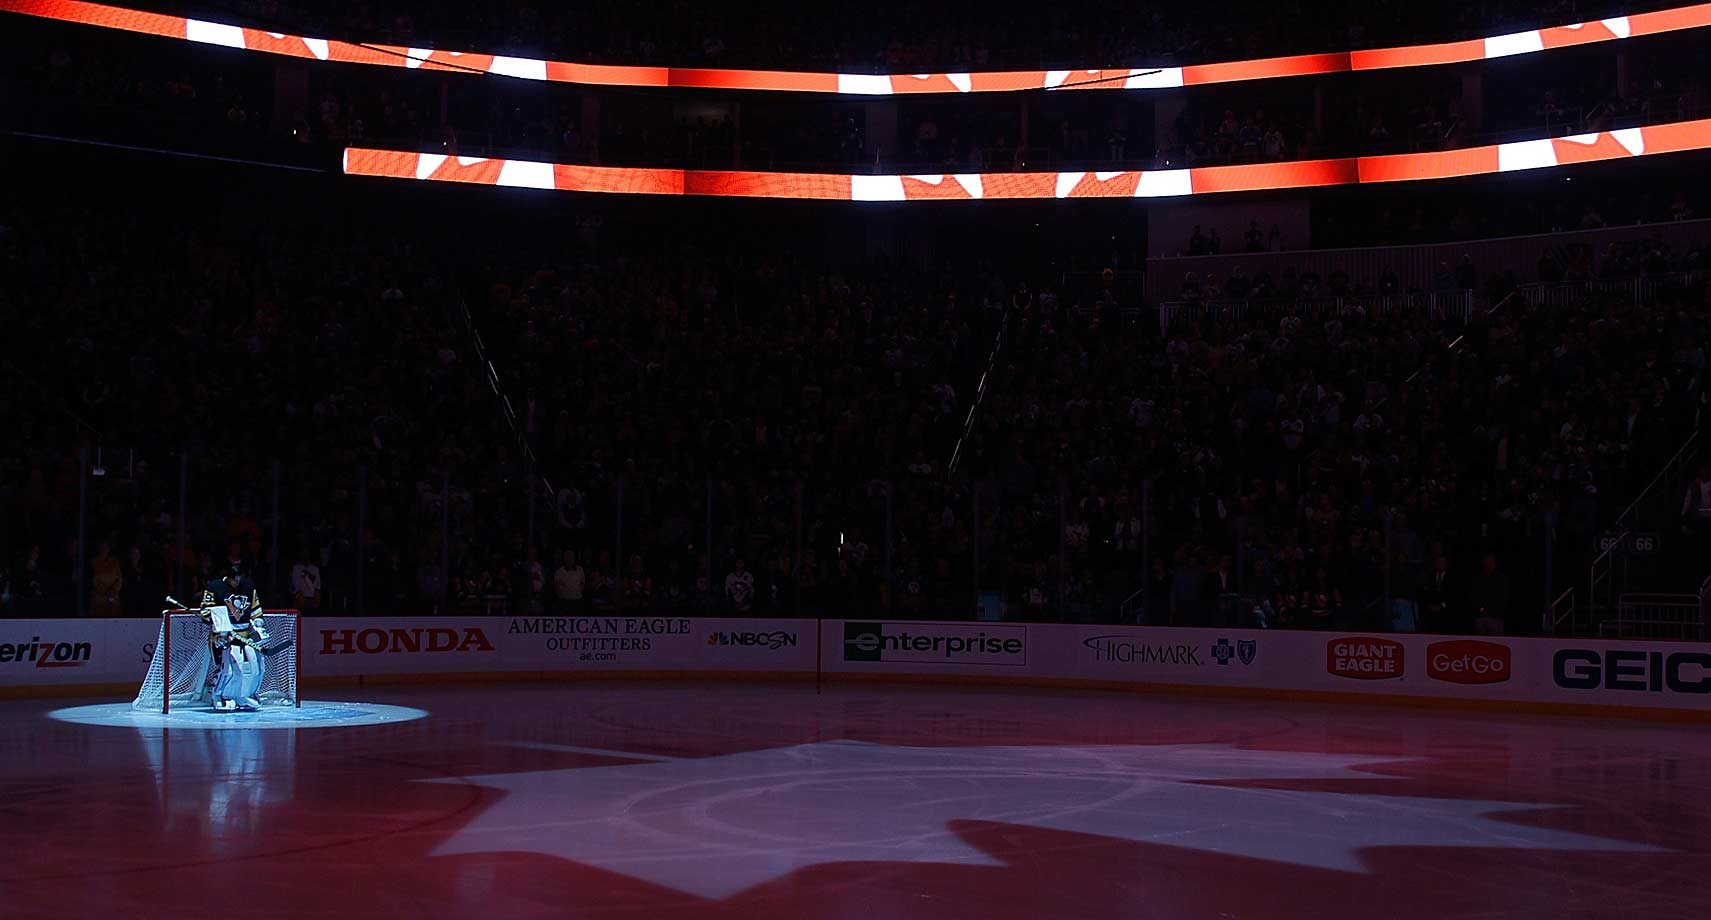 The Flyers took on the Penguins at Pittsburgh's Consol Energy Center on Oct. 22, the Canadian National Anthem was performed in honor of the Ottawa shooting victims. O Canada is not usually played before games between two American-based teams.